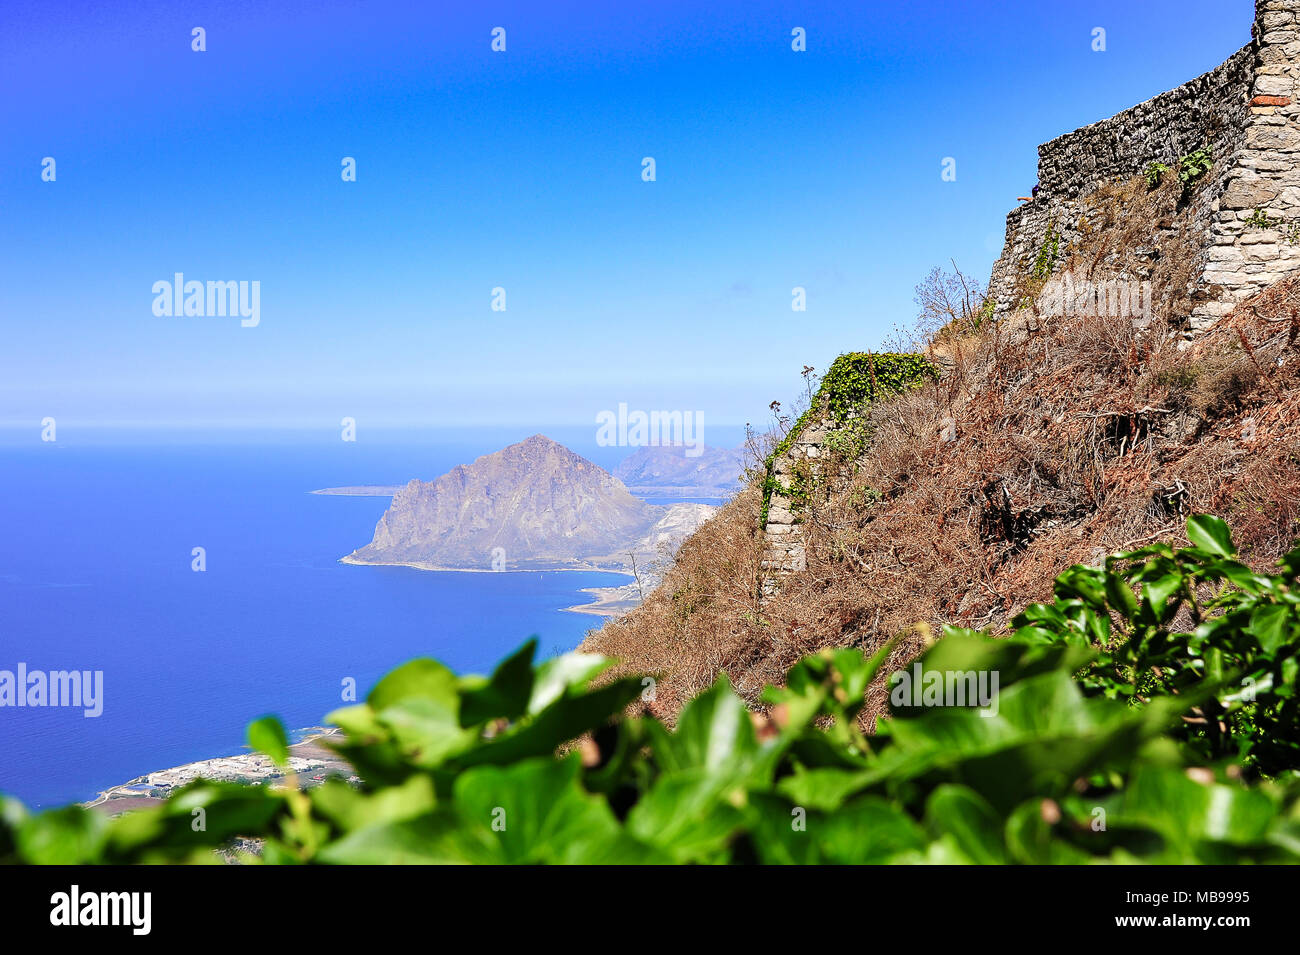 Aerial view from Erice near Trapani (Sicily) to Riserva Naturale Orientata Monte Cofano. Ancient hilltop fortress keeps watch over the Tyrrhenian Sea - Stock Image